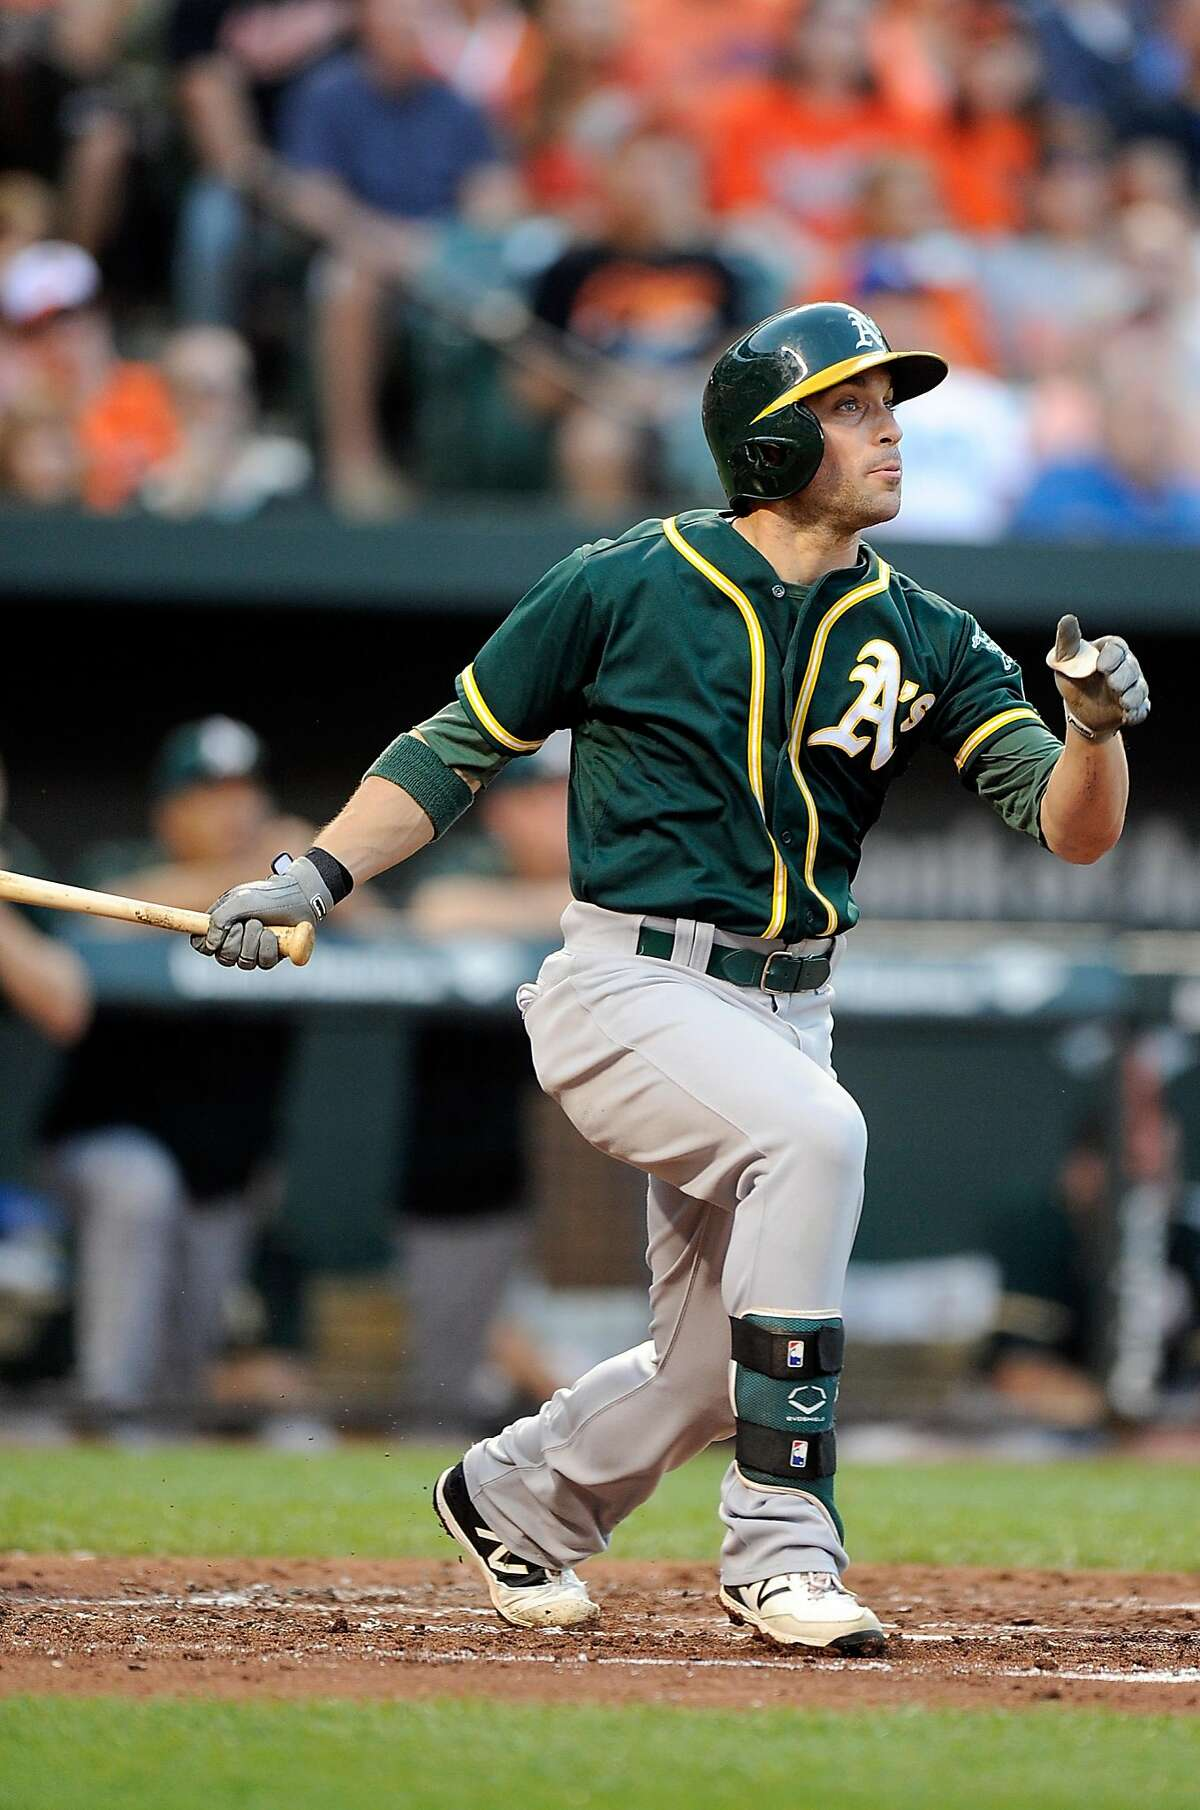 BALTIMORE, MD - AUGUST 15: Sam Fuld #23 of the Oakland Athletics hits a home run in the third inning against the Baltimore Orioles at Oriole Park at Camden Yards on August 15, 2015 in Baltimore, Maryland. (Photo by Greg Fiume/Getty Images)